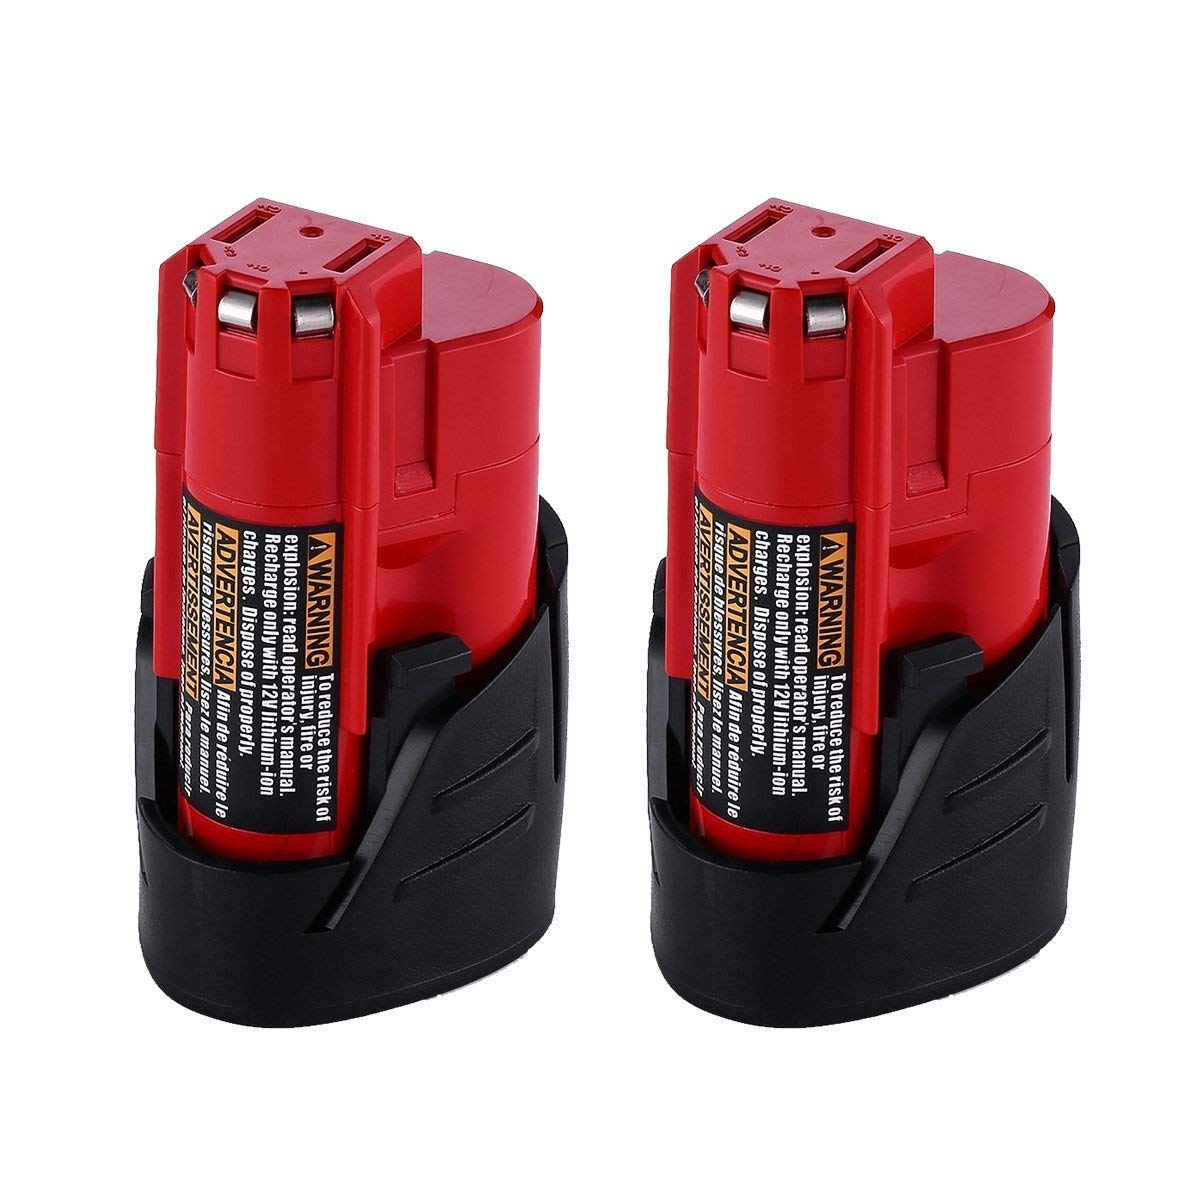 2 pack Replacement M12 battery for Milwaukee 12V Battery 3.0Ah 48-11-2402 48-11-2440 48-11-2411 M12 XC Cordless Drill